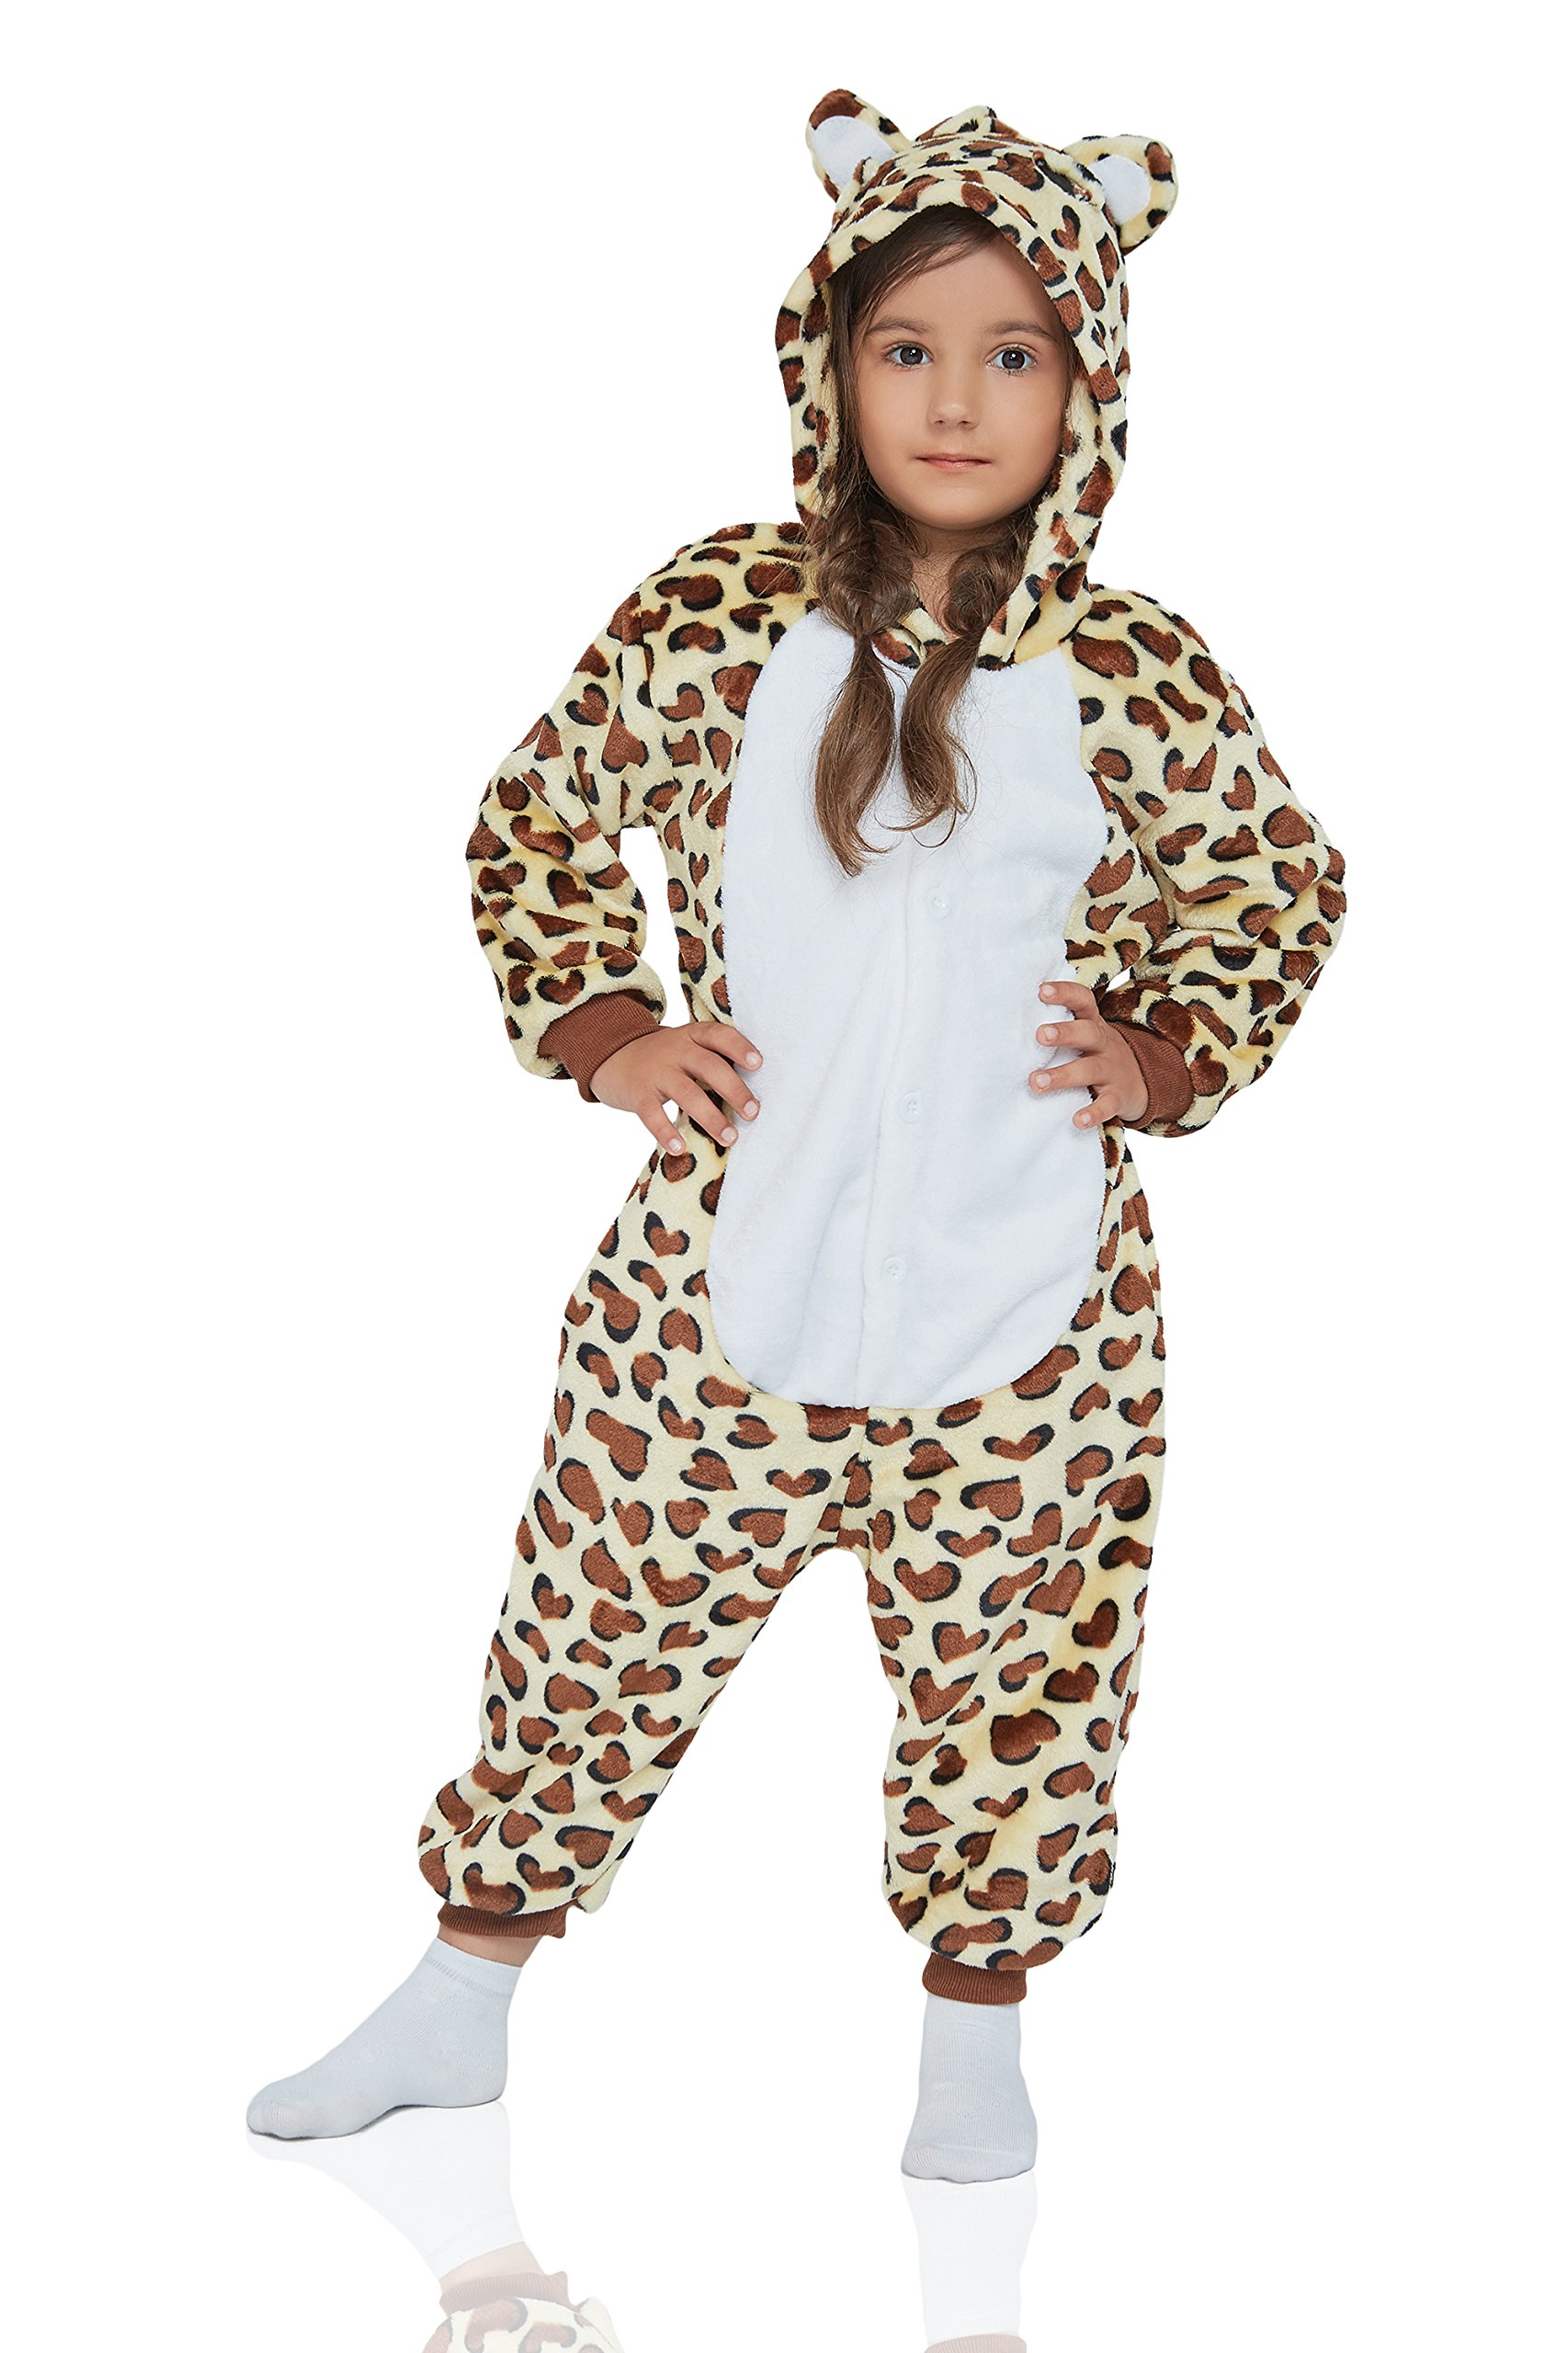 Kids Leopard Kigurumi Animal Onesie Pajamas Plush Onsie One Piece Cosplay Costume (Yellow, Brown, White) by Nothing But Love (Image #1)